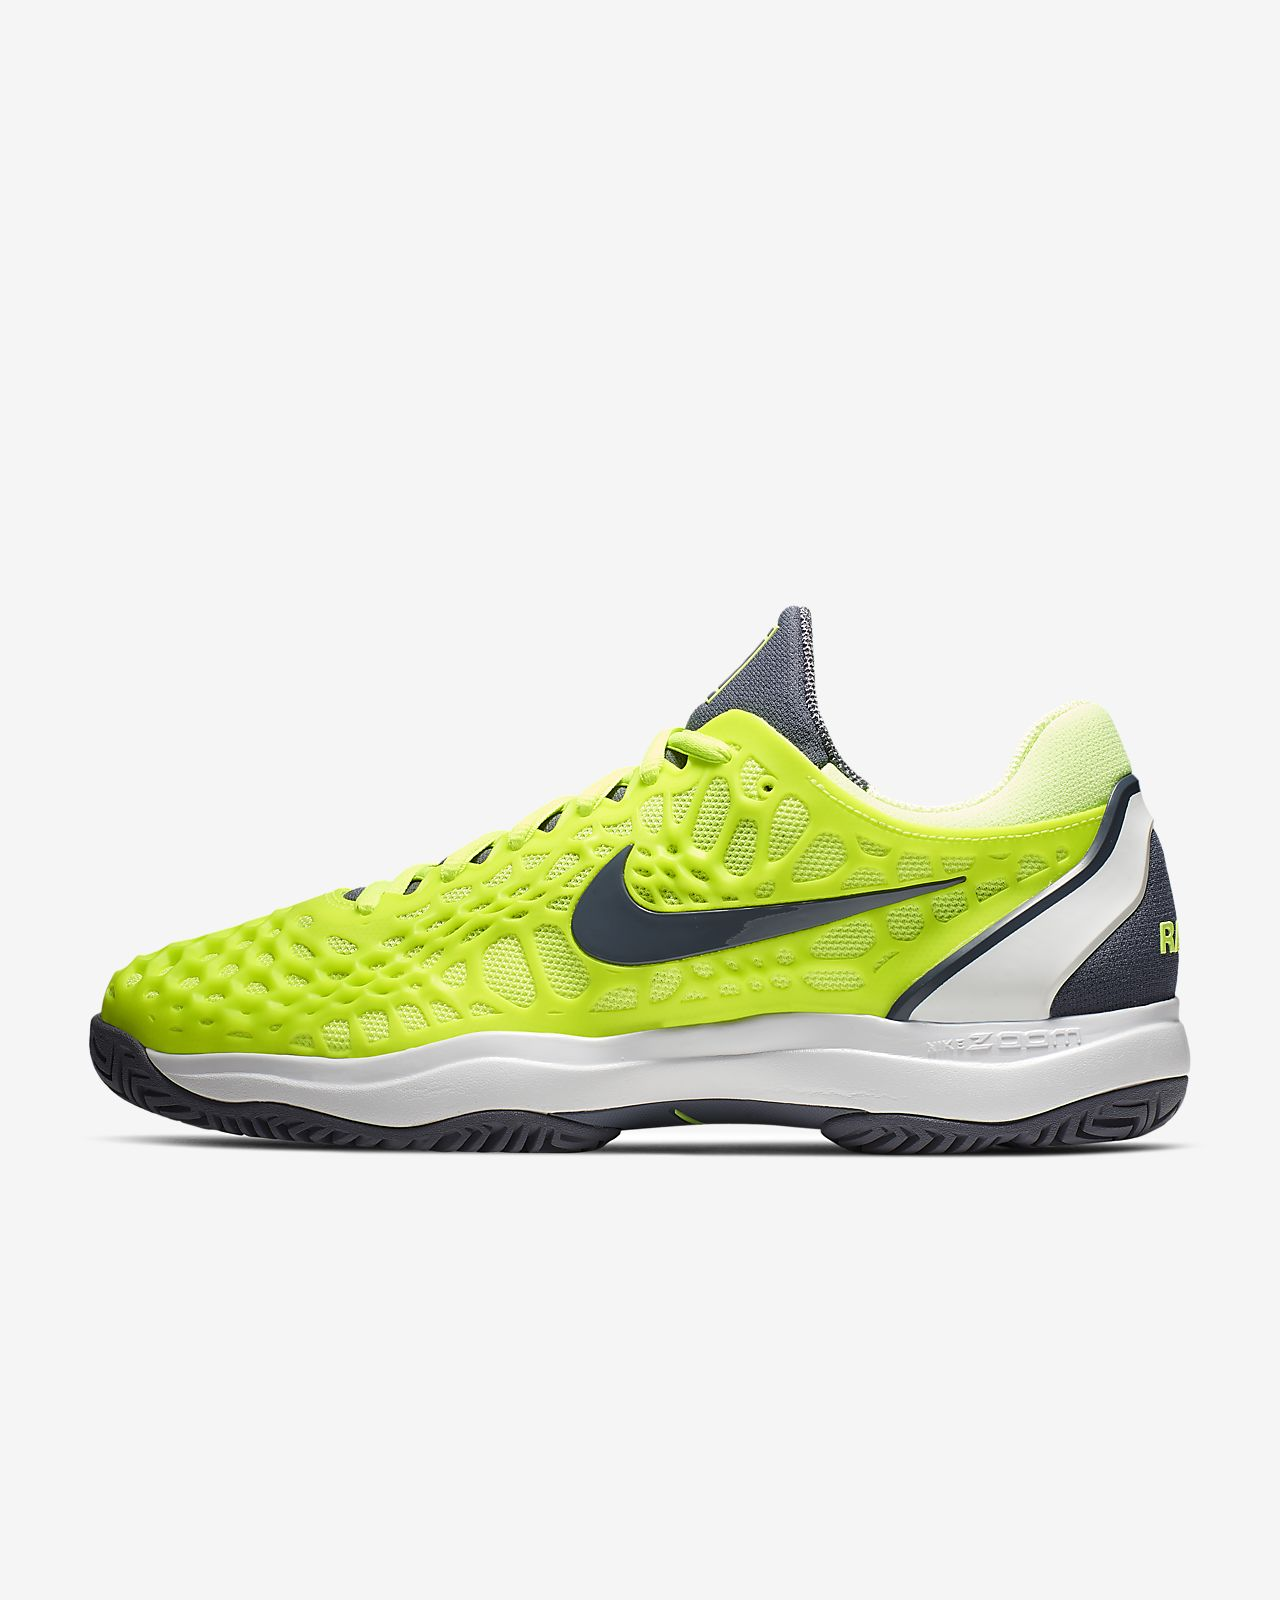 5382eacaf5 NikeCourt Zoom Cage 3 Men's Hard Court Tennis Shoe. Nike.com AU